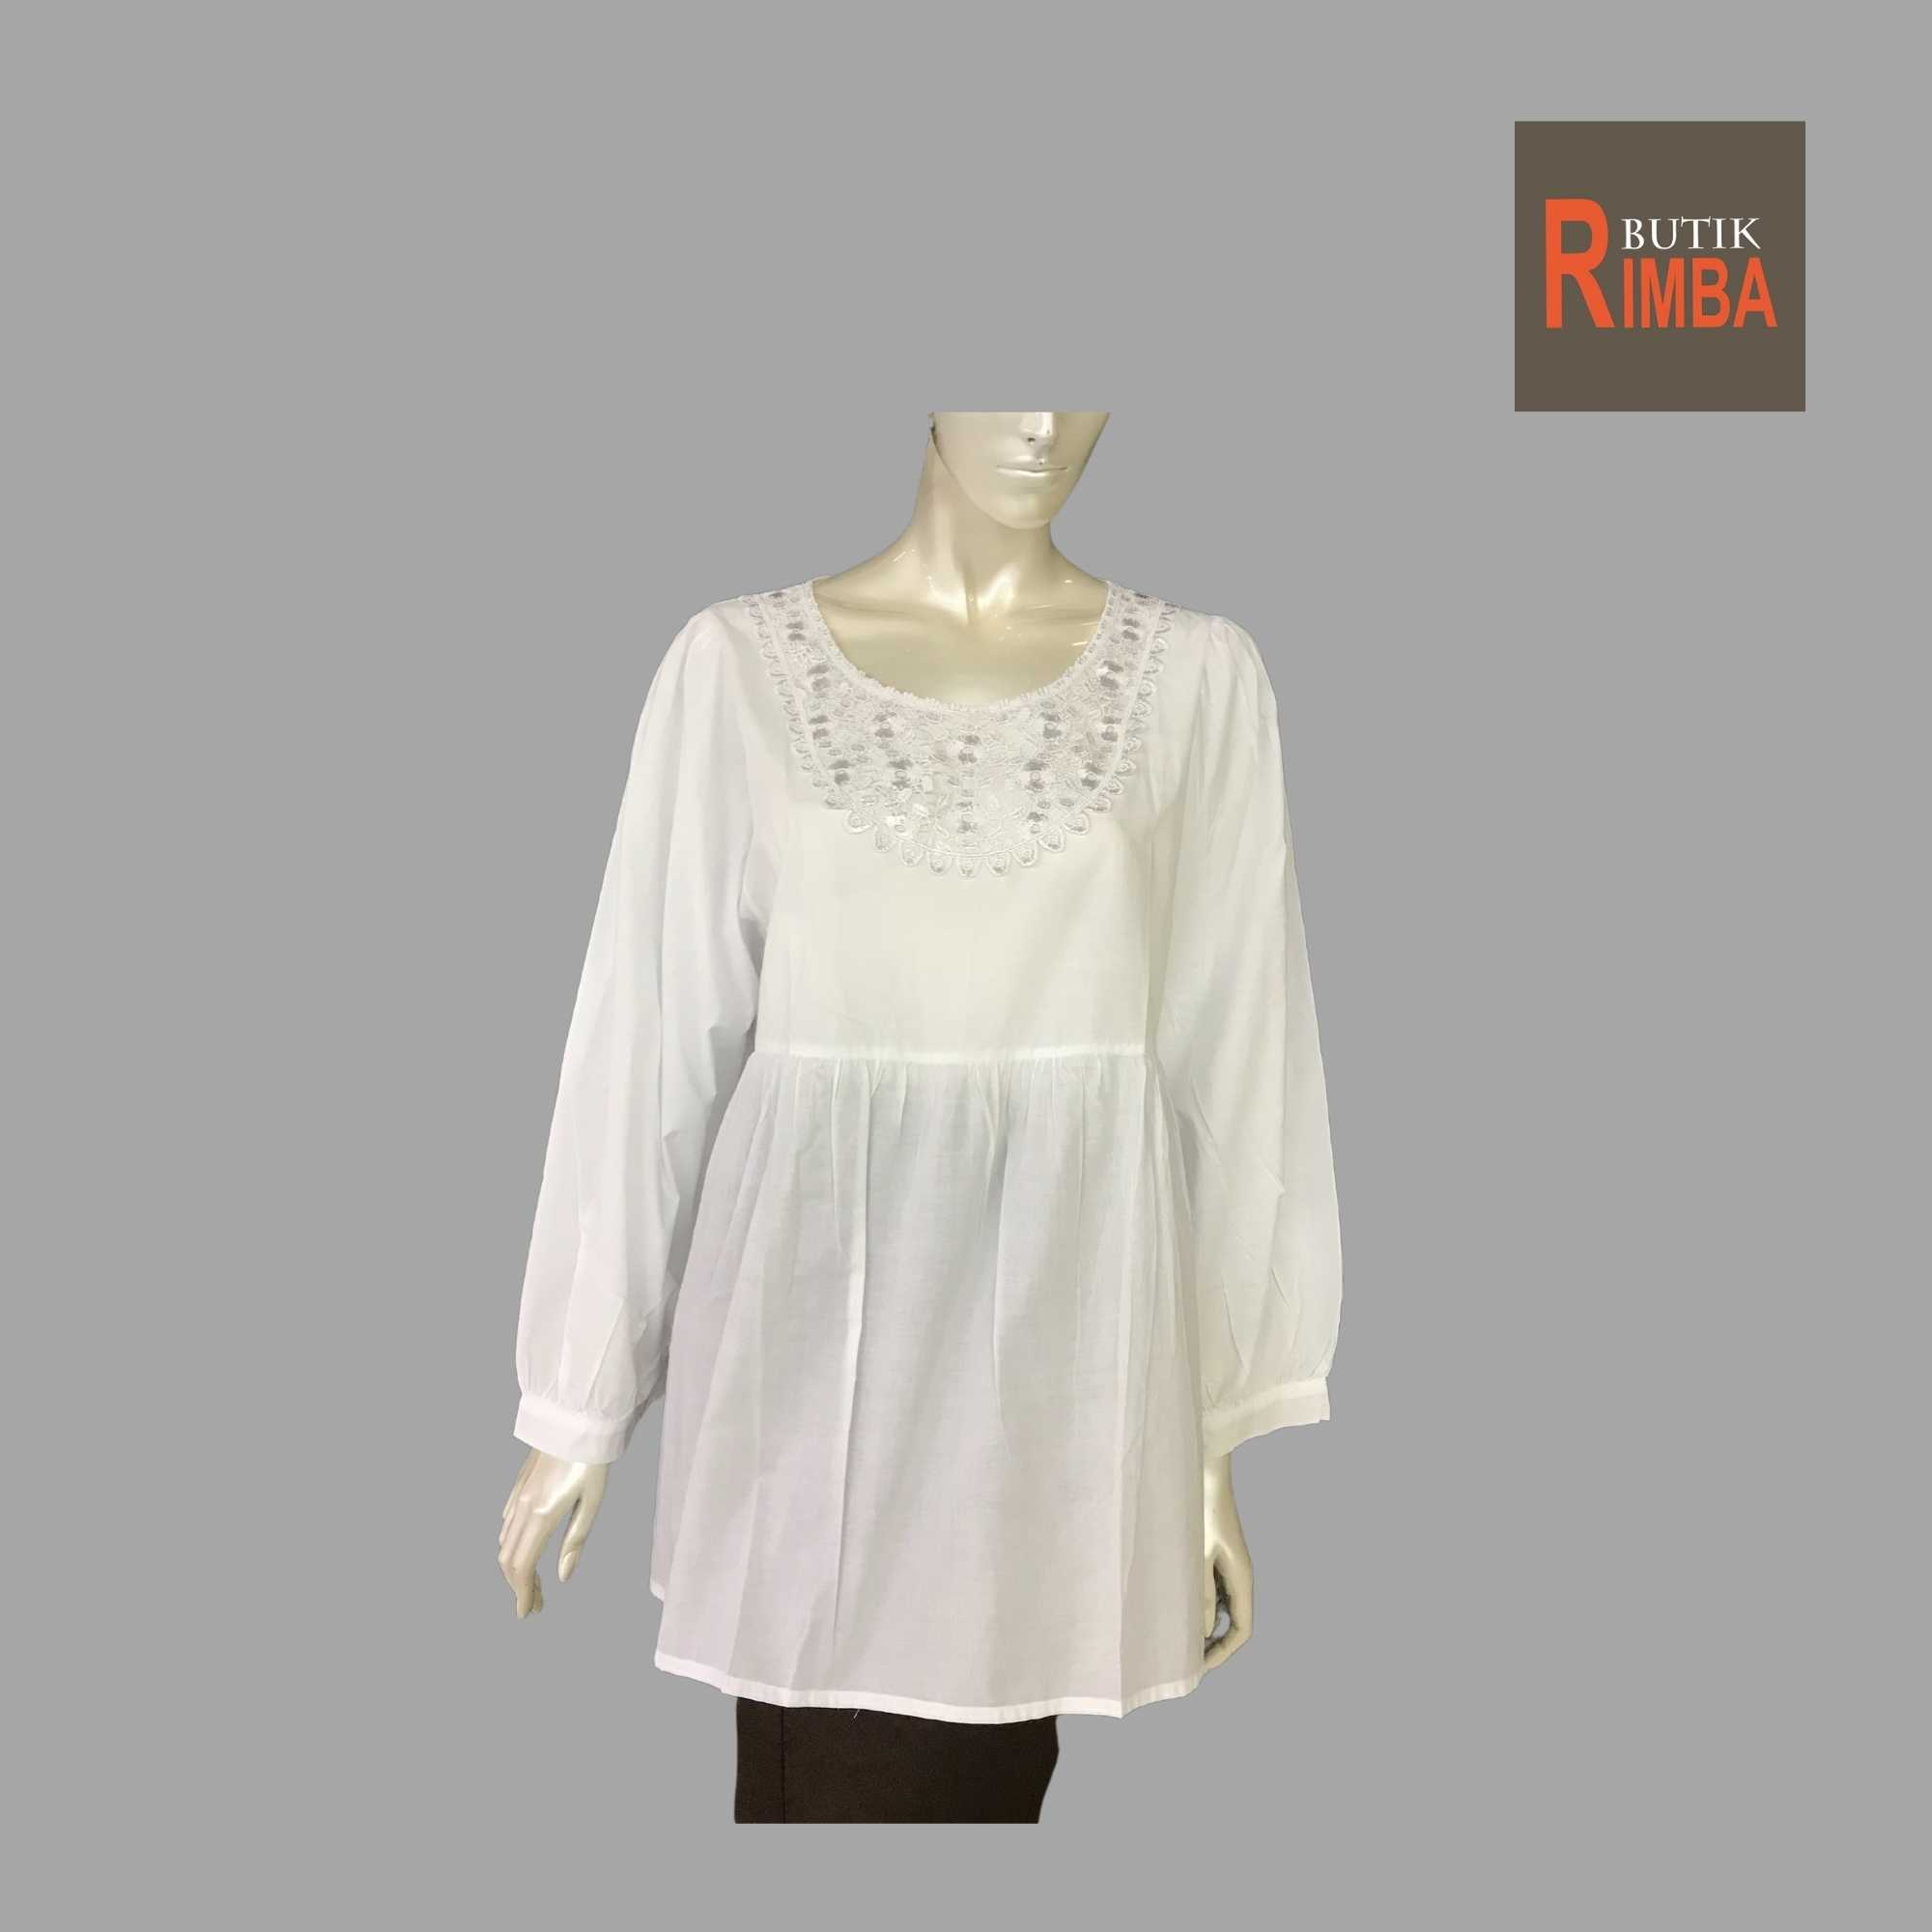 WOMEN CASUAL AND COMFORTABLE WHITE BLOUSE COTTON FREE SIZE PATTERN 04